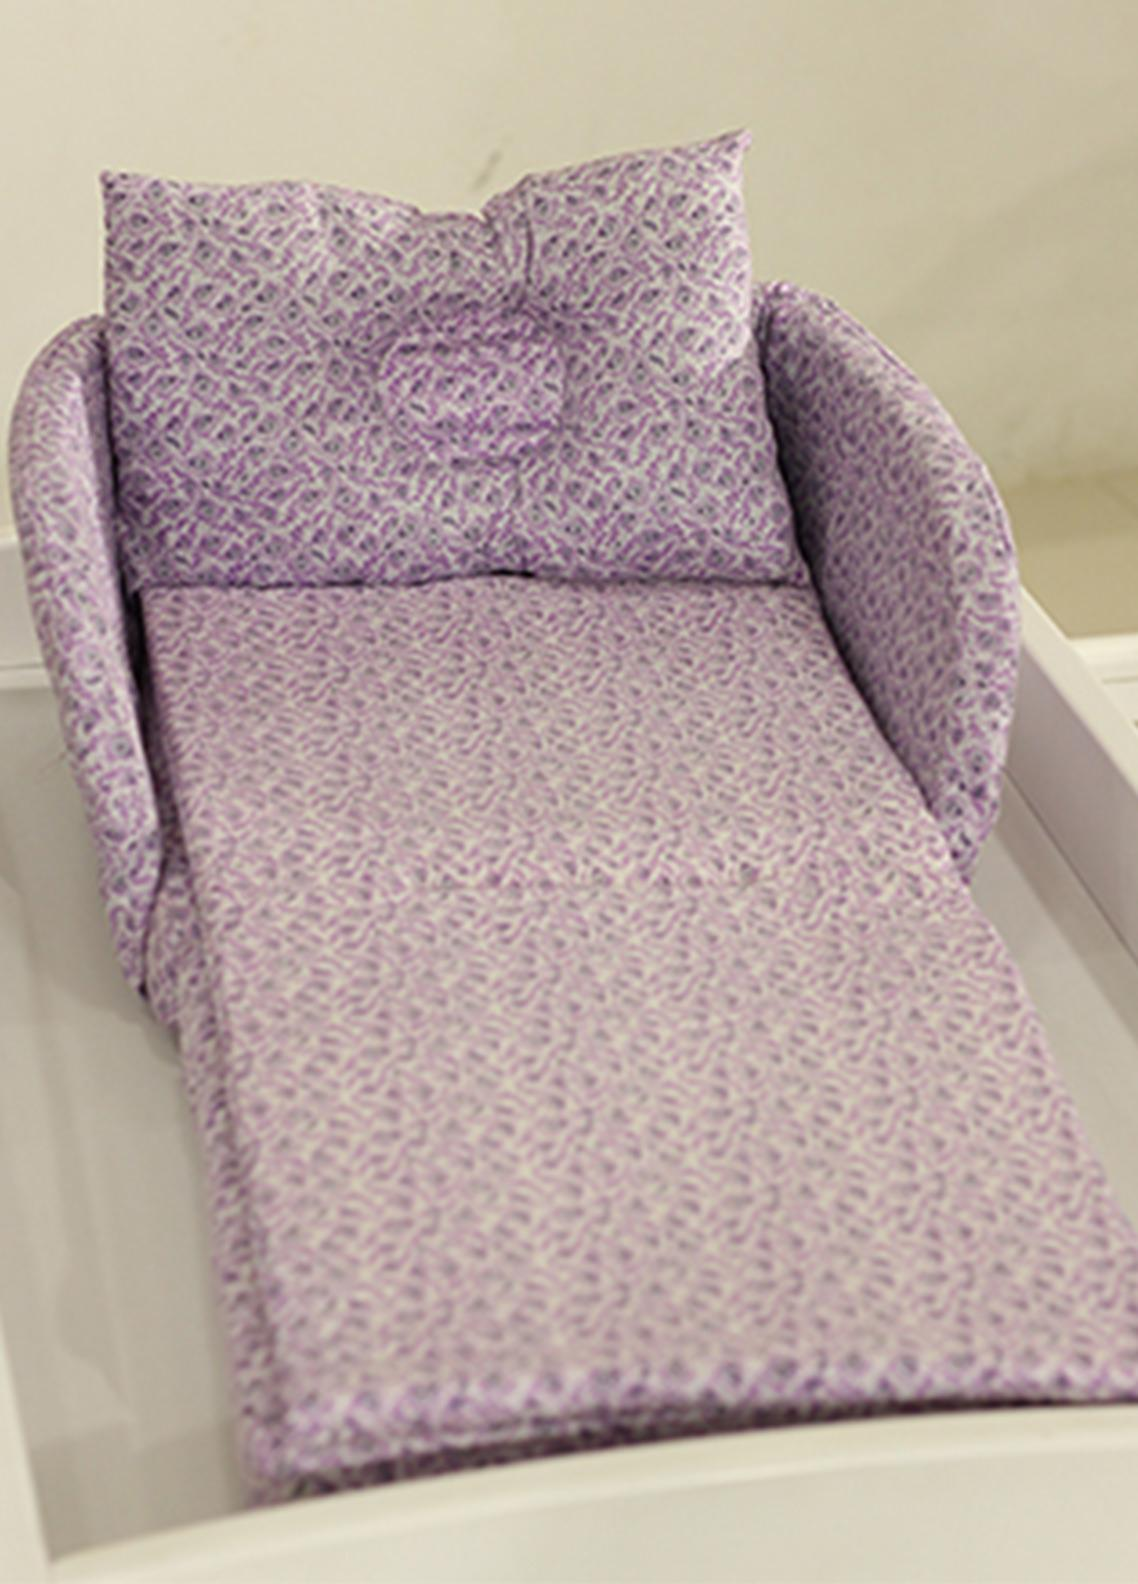 Plush Mink  Cotton Folding Bed 3 Pieces Plush Mink Baby Folding Bed 02 Purple Shade - Baby Products